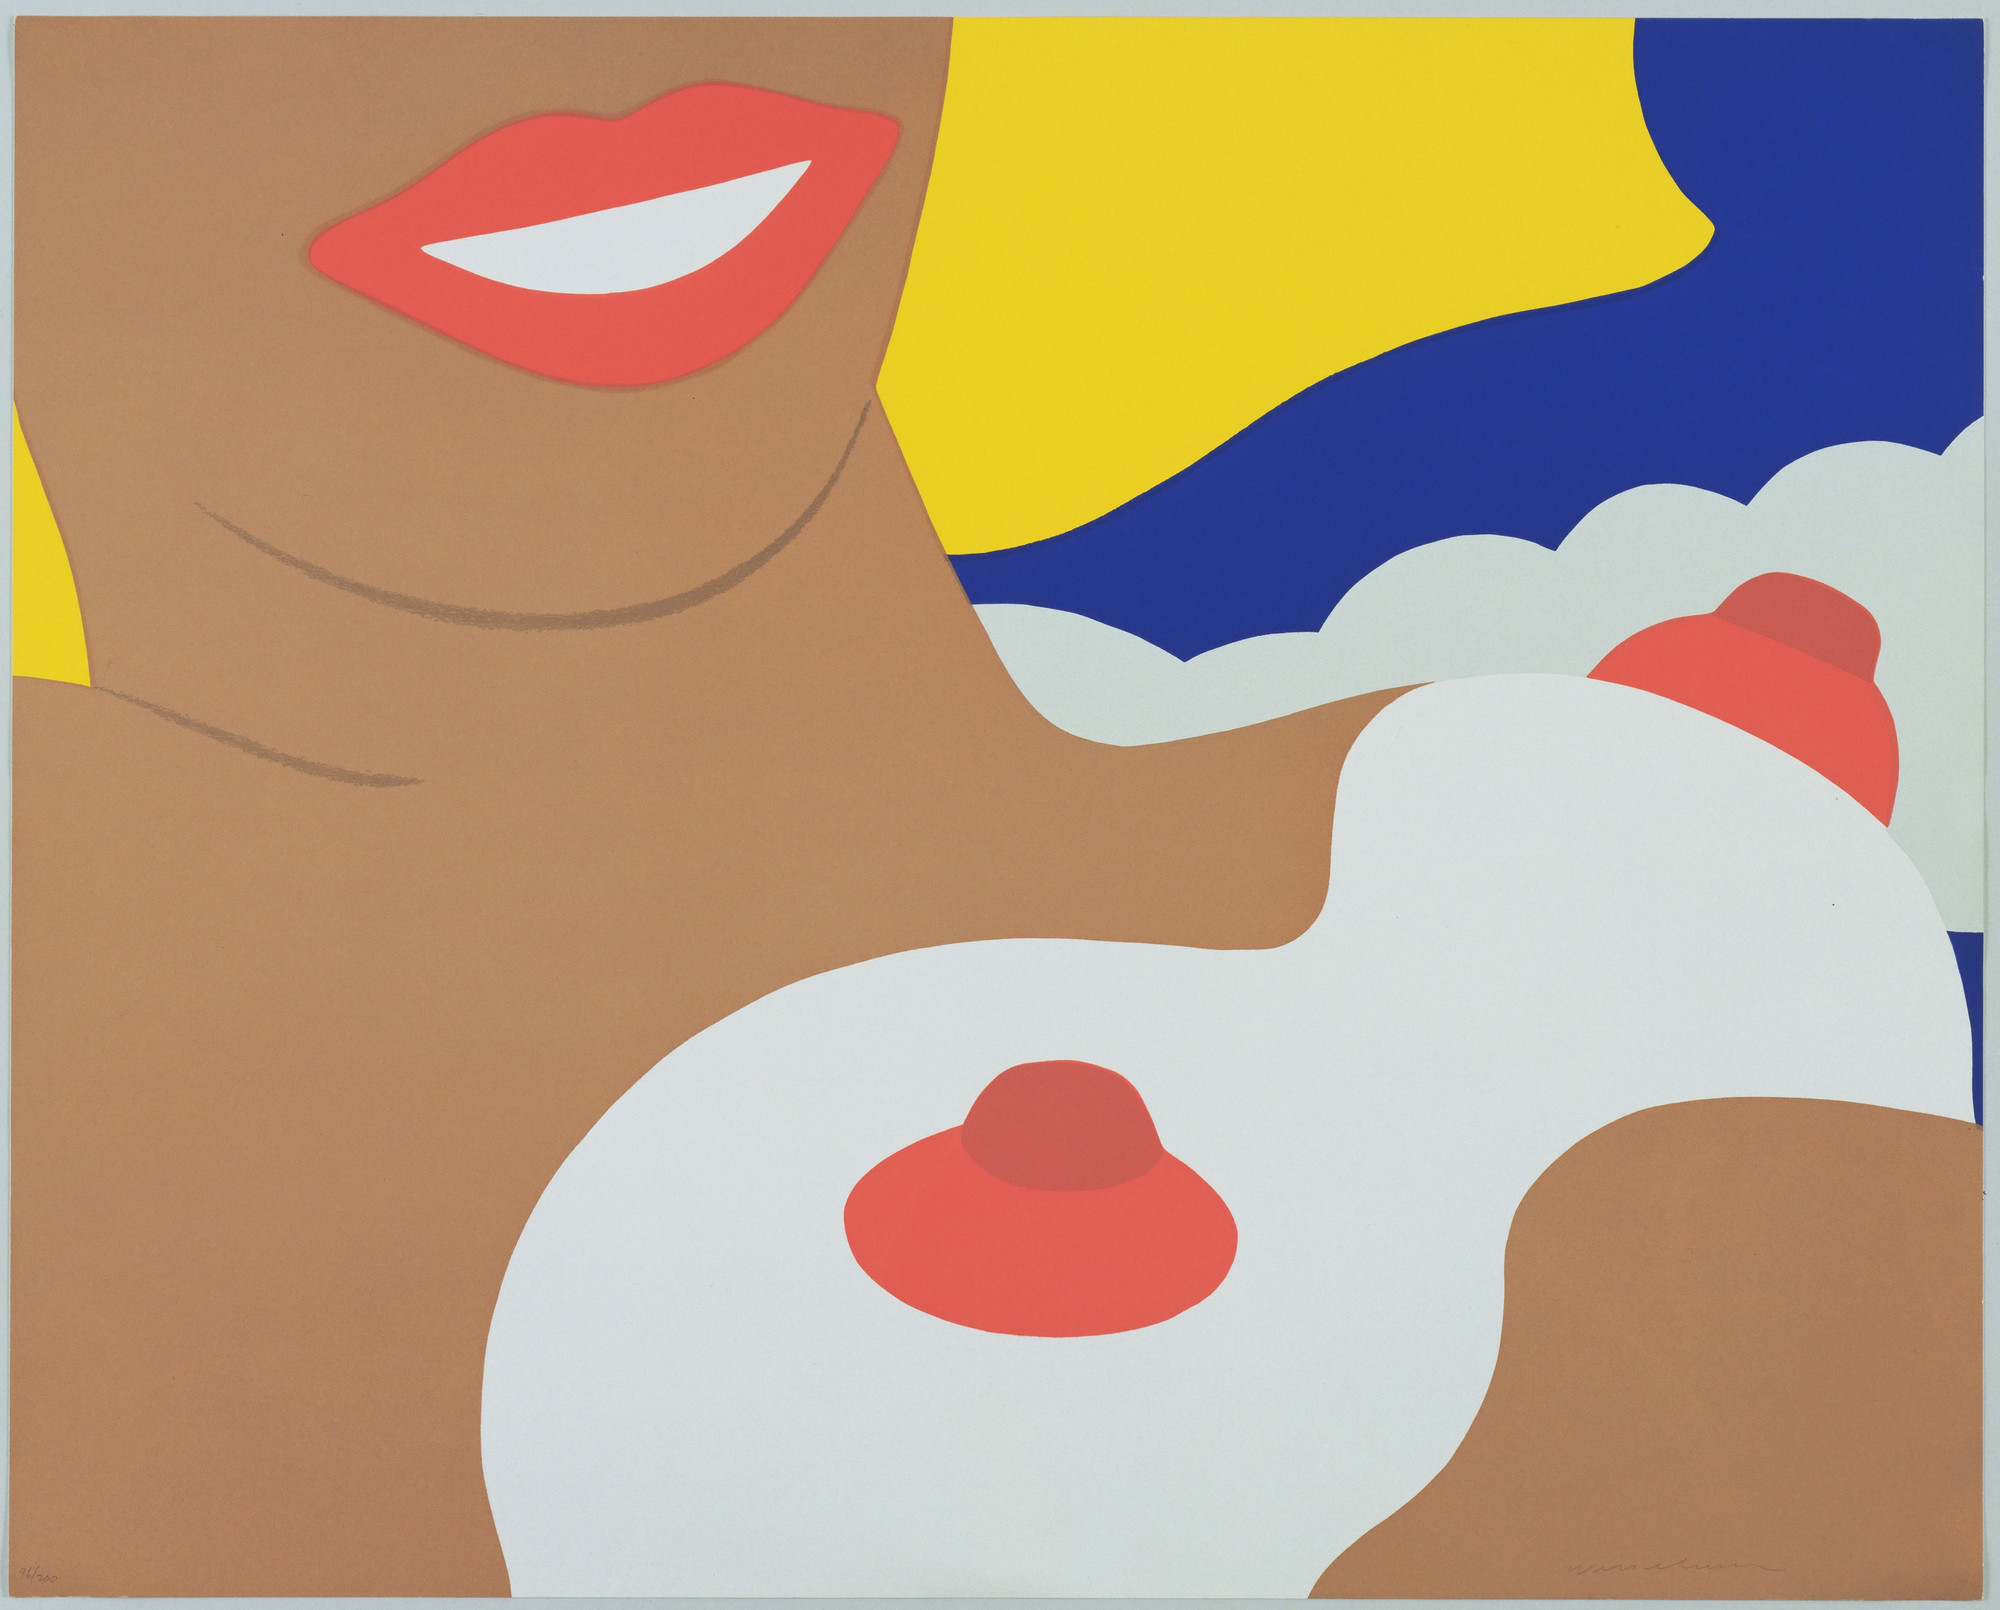 Tom Wesselmann. Nude from 11 Pop Artists, Volume II. 1965, published 1966